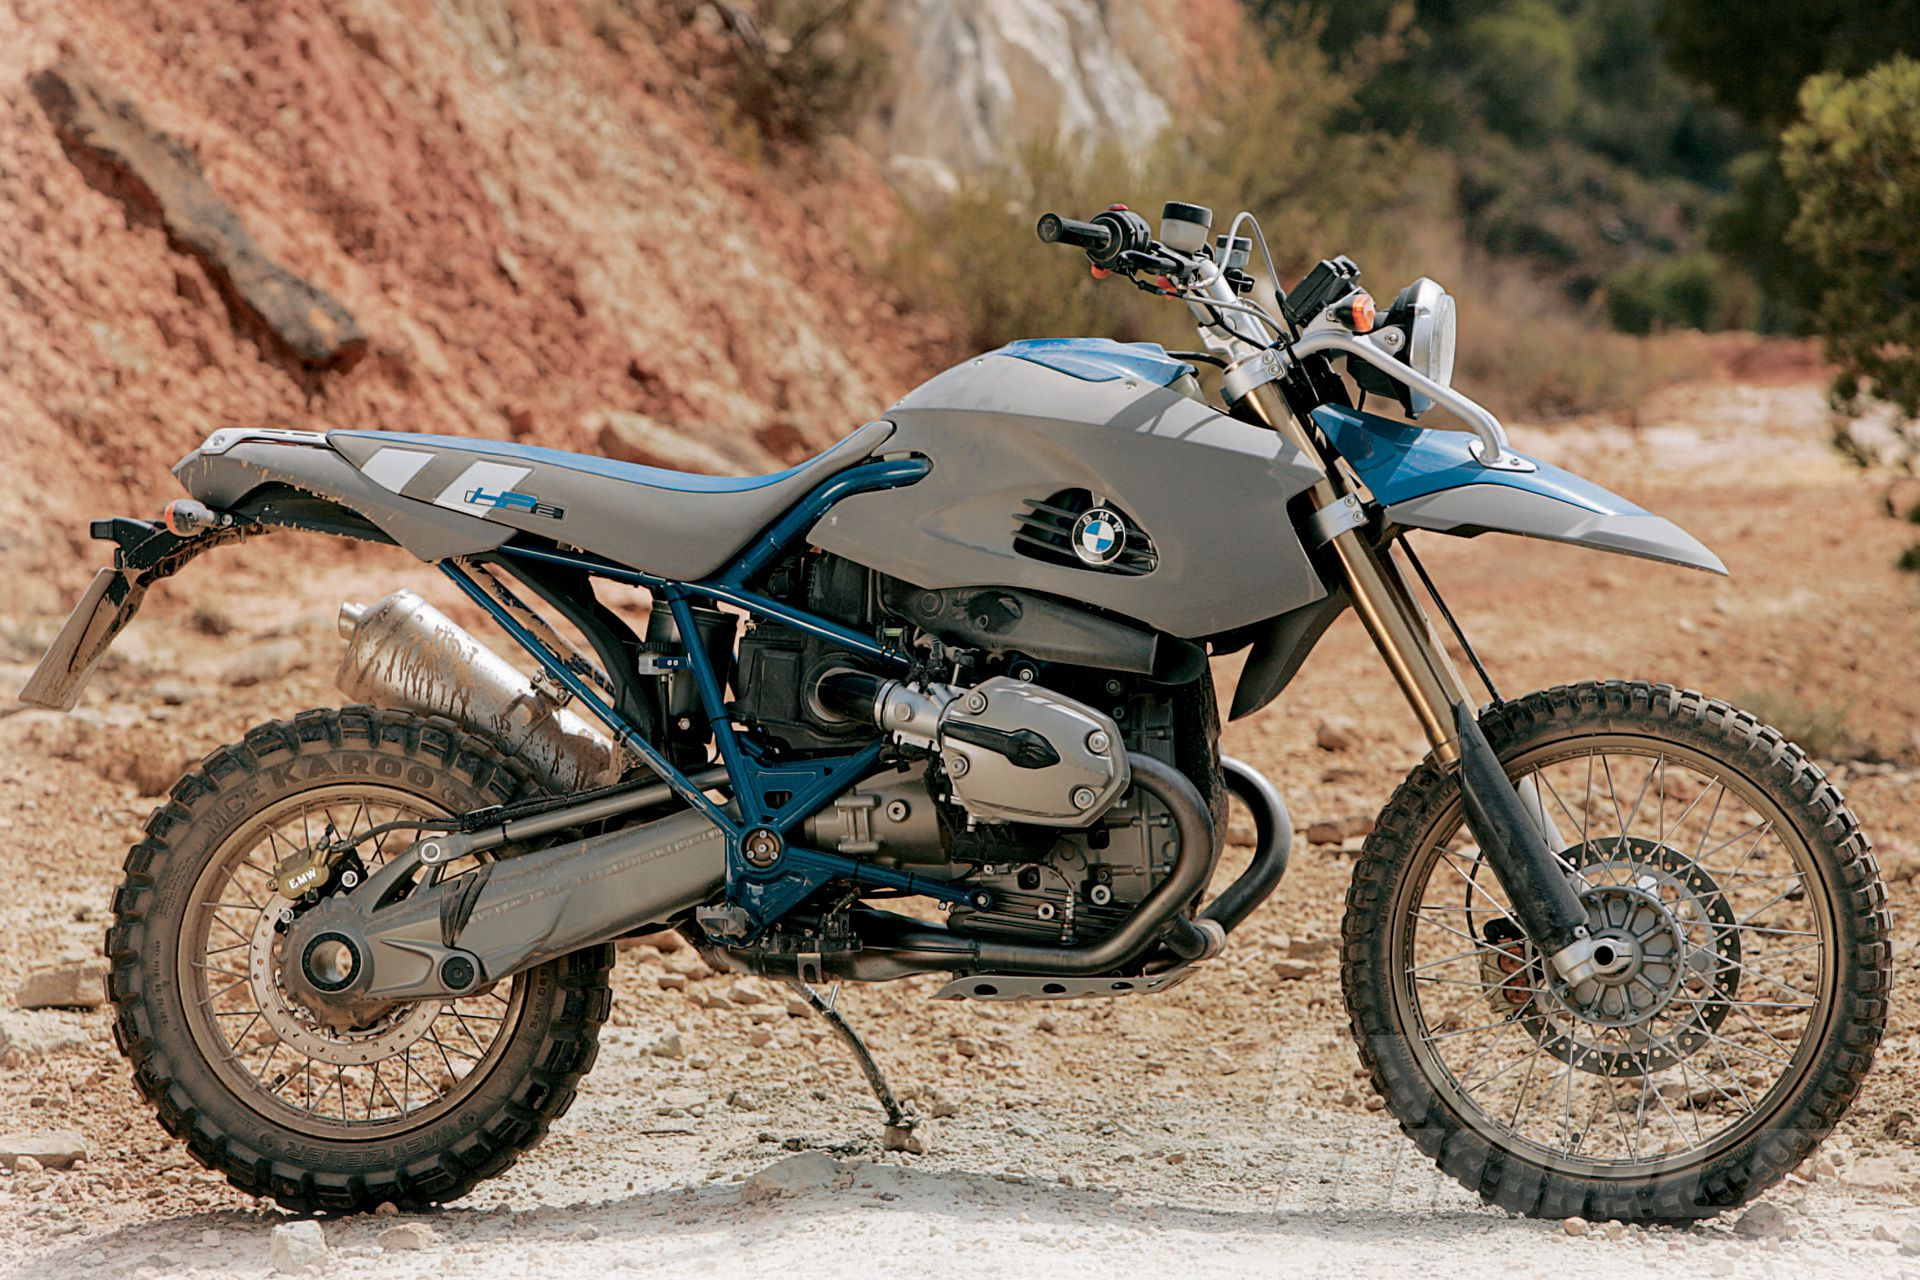 Bmw Hp2 Enduro Bike Motorcycle Review Cycle World